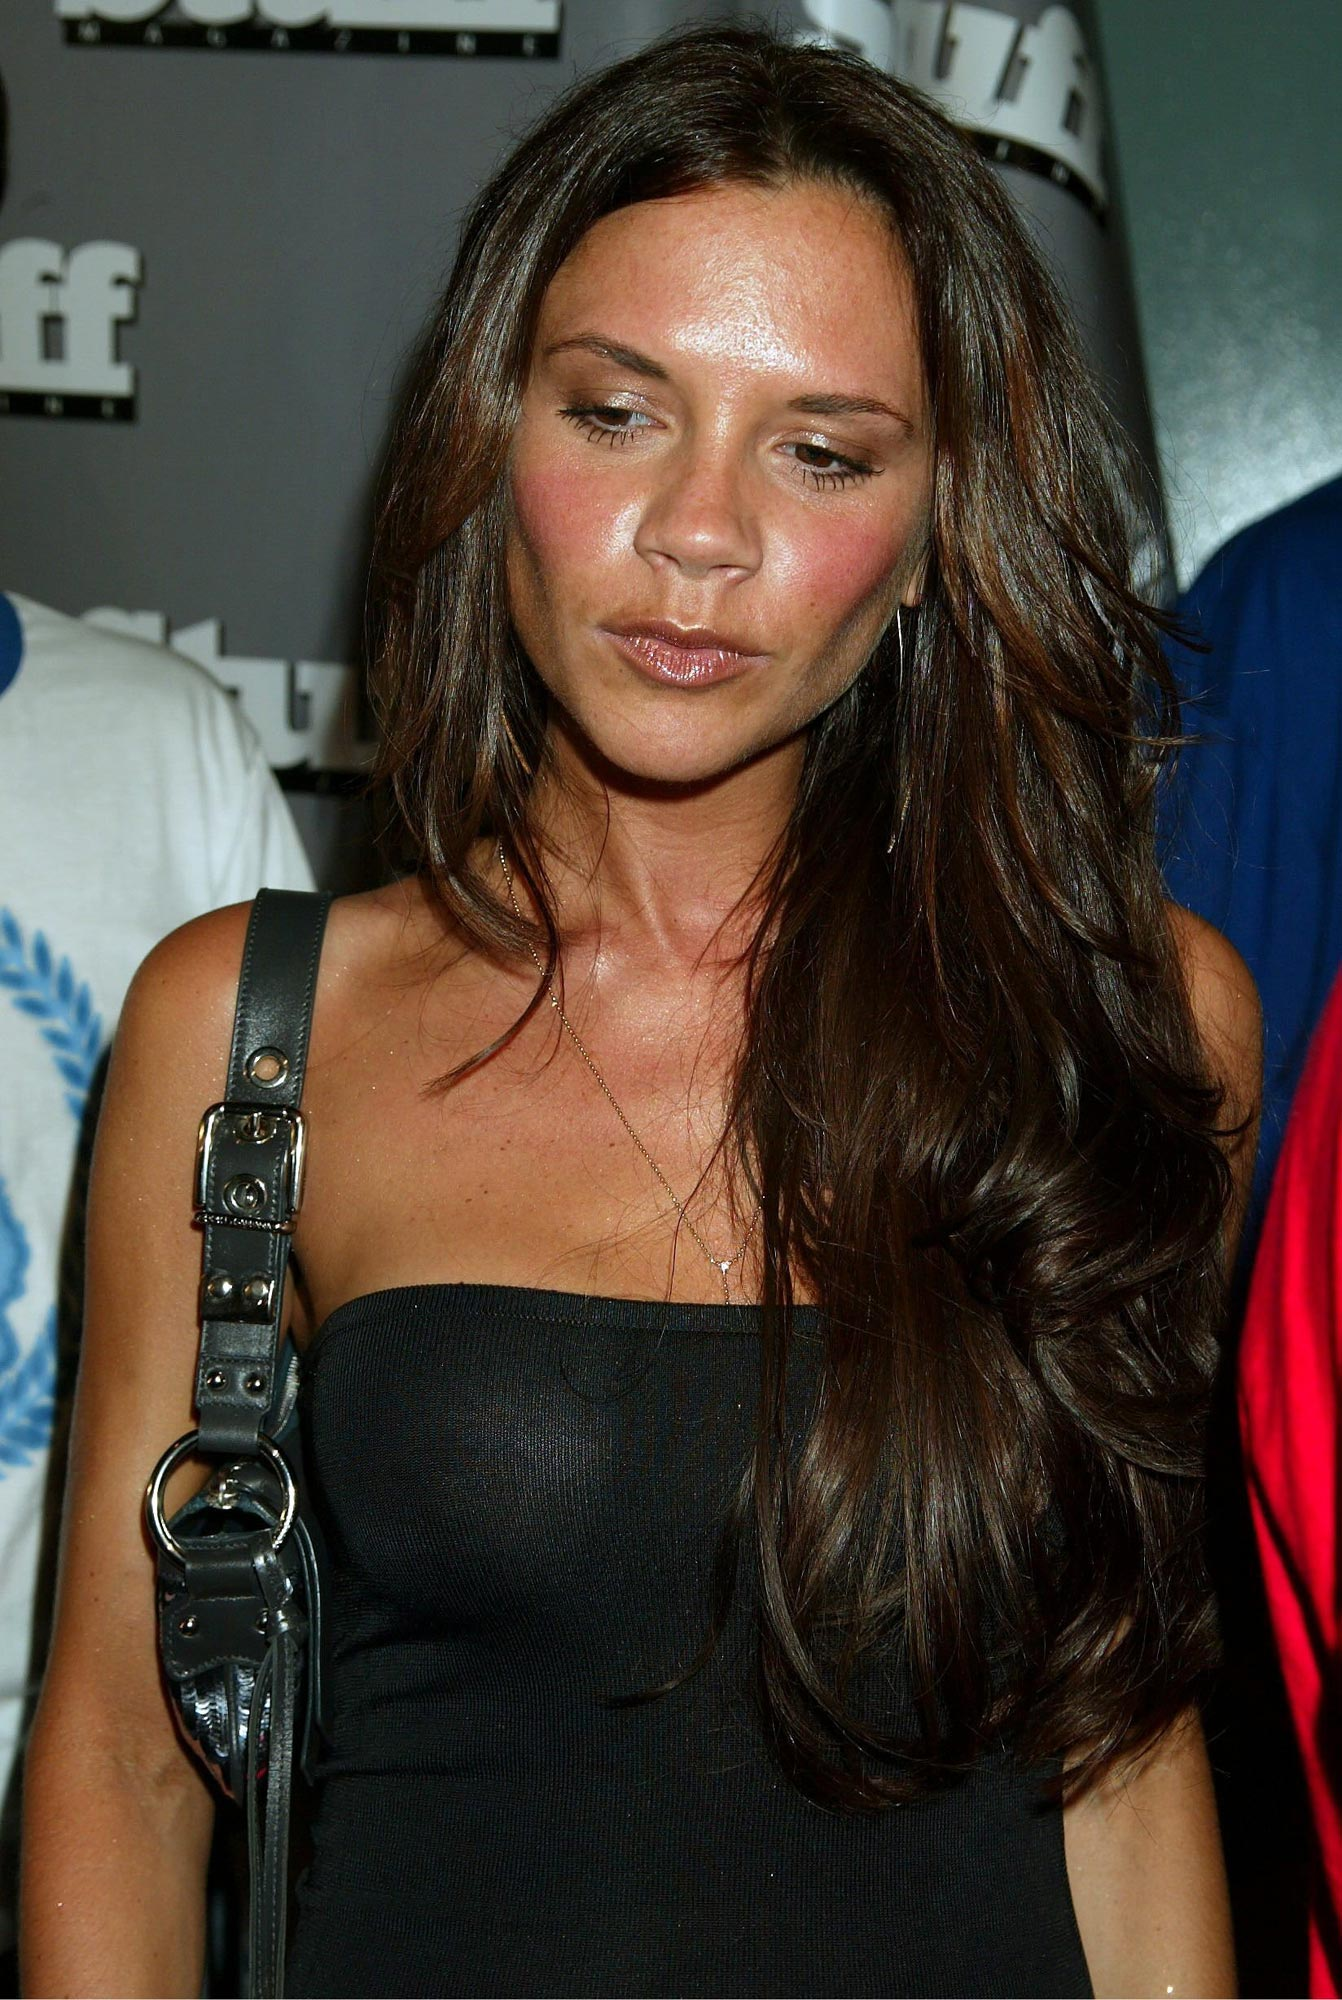 Виктория Бэкхэм - Victoria Beckham фото №16360: http://www.theplace.ru/photos/photo.php?id=16360